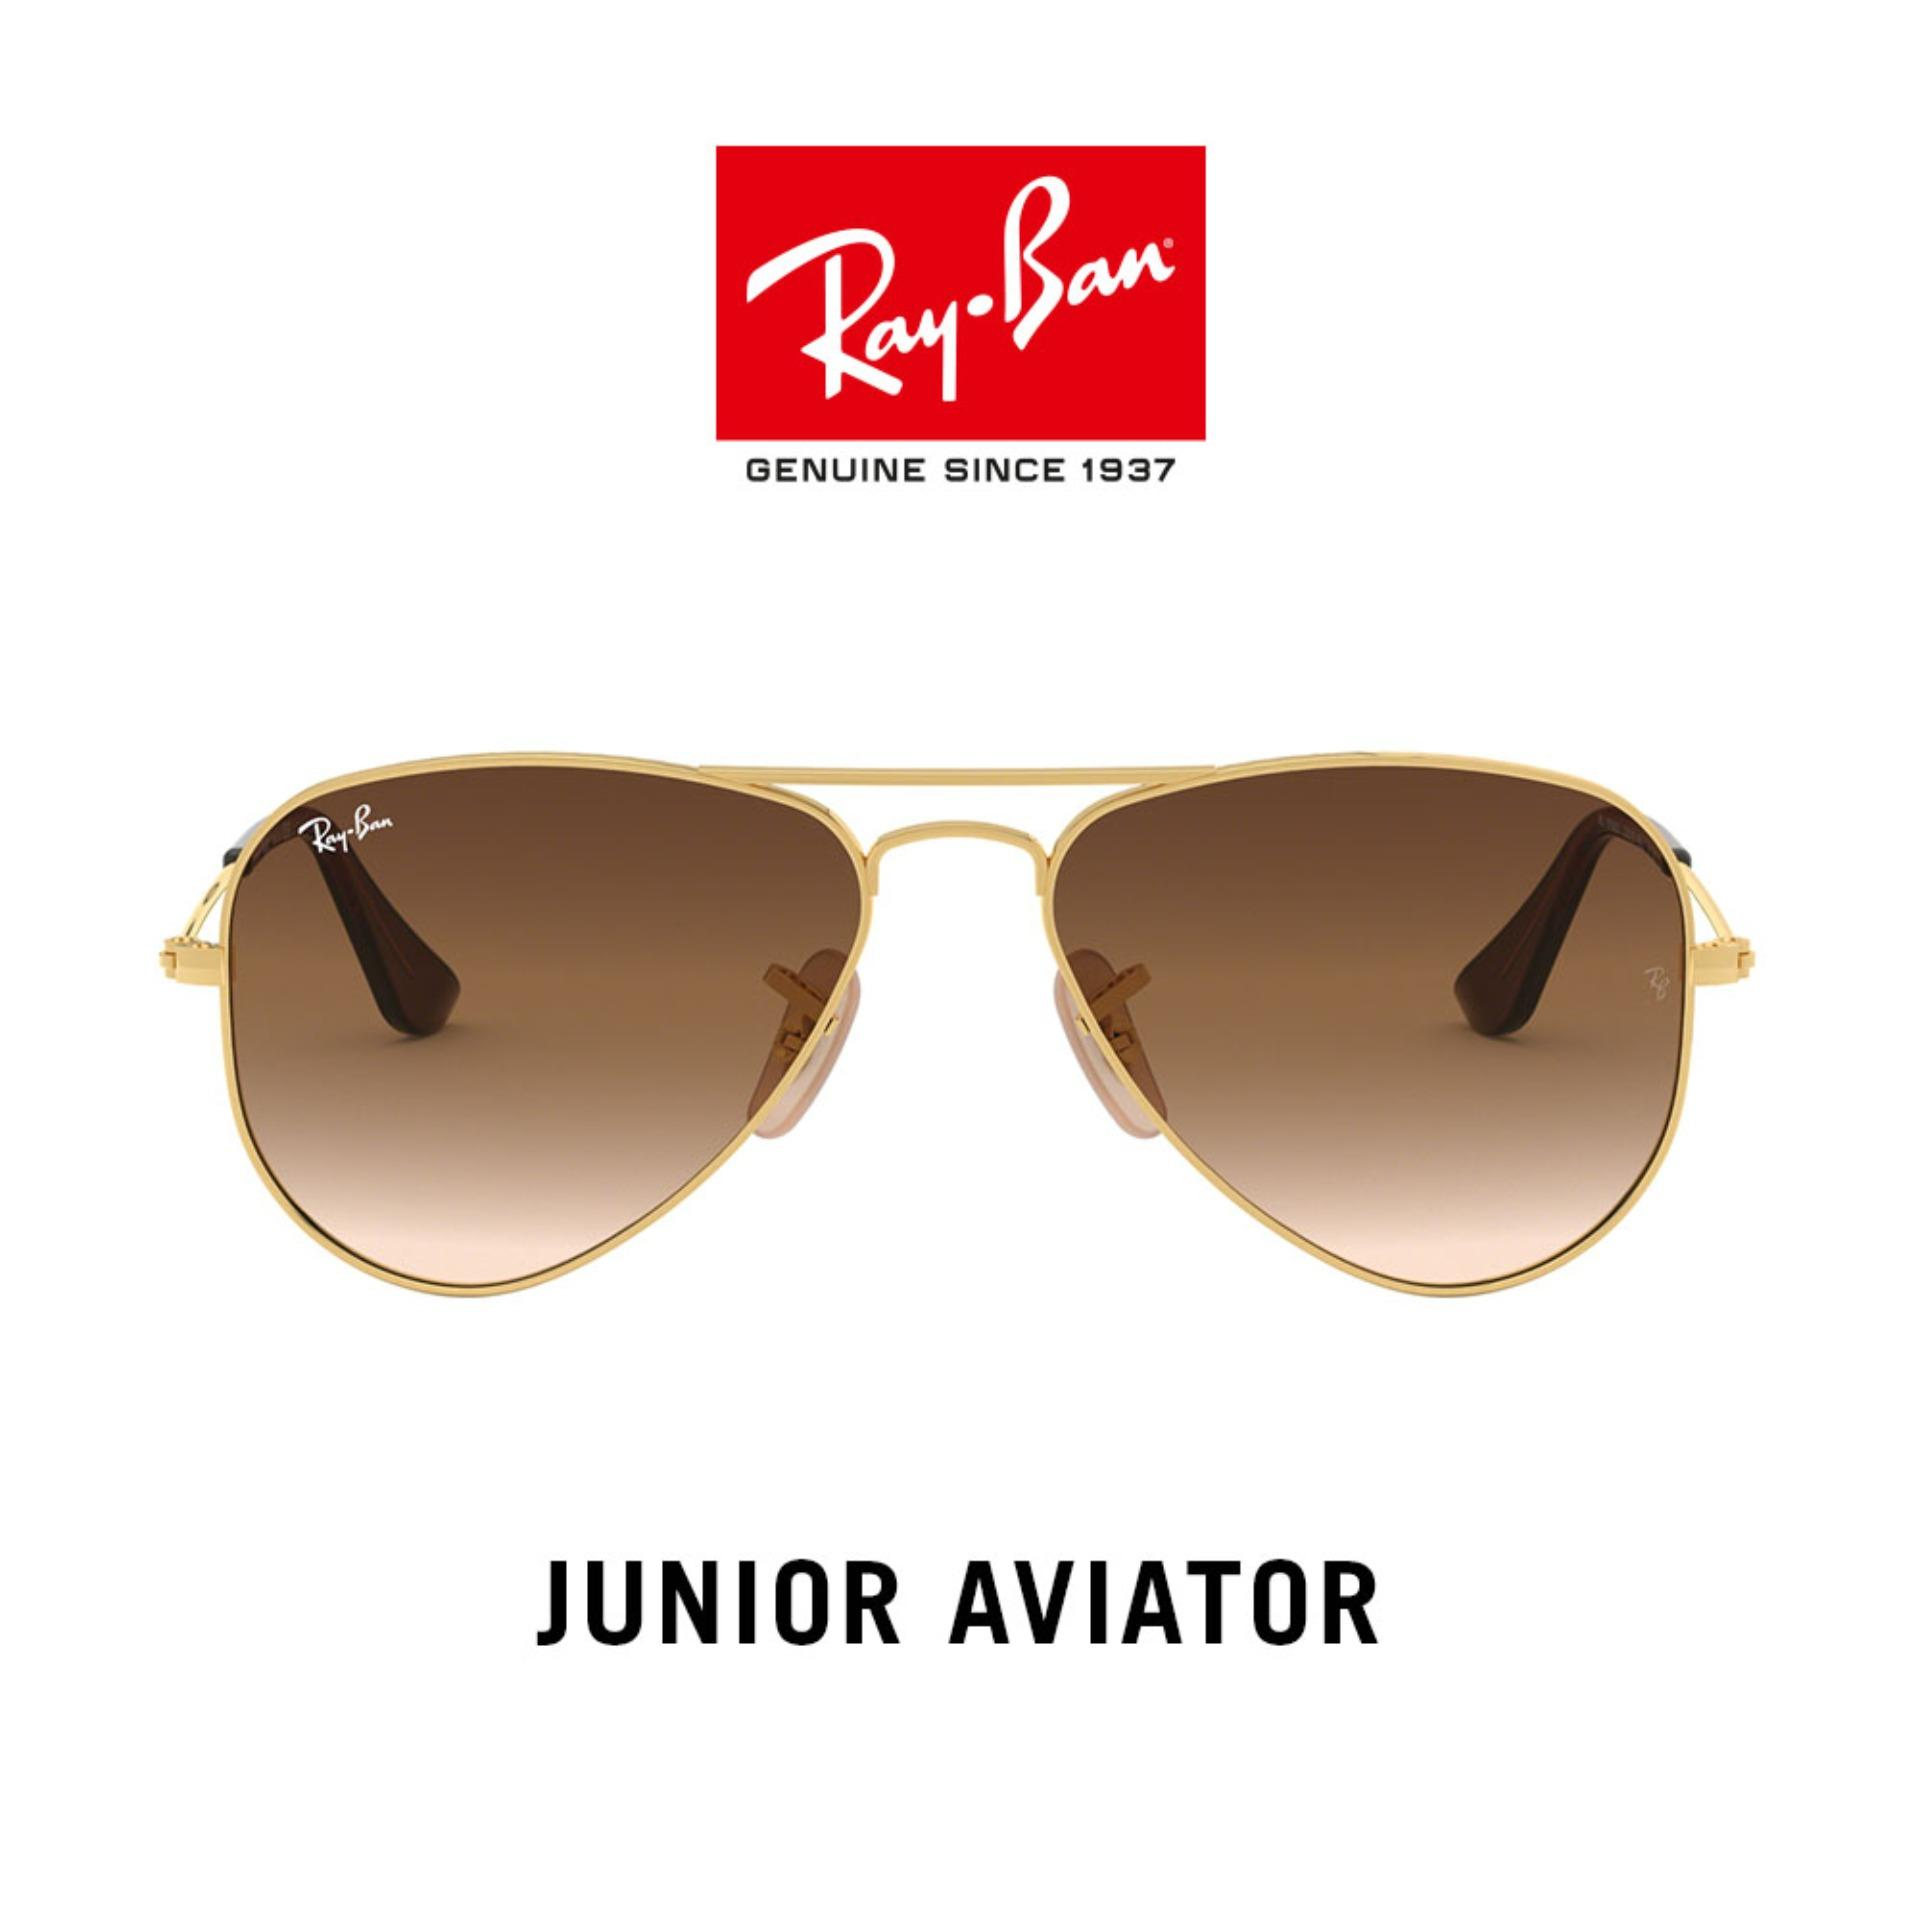 49594c2f985cf6 Ray Ban Philippines: Ray Ban price list - Shades & Sunglasses for ...